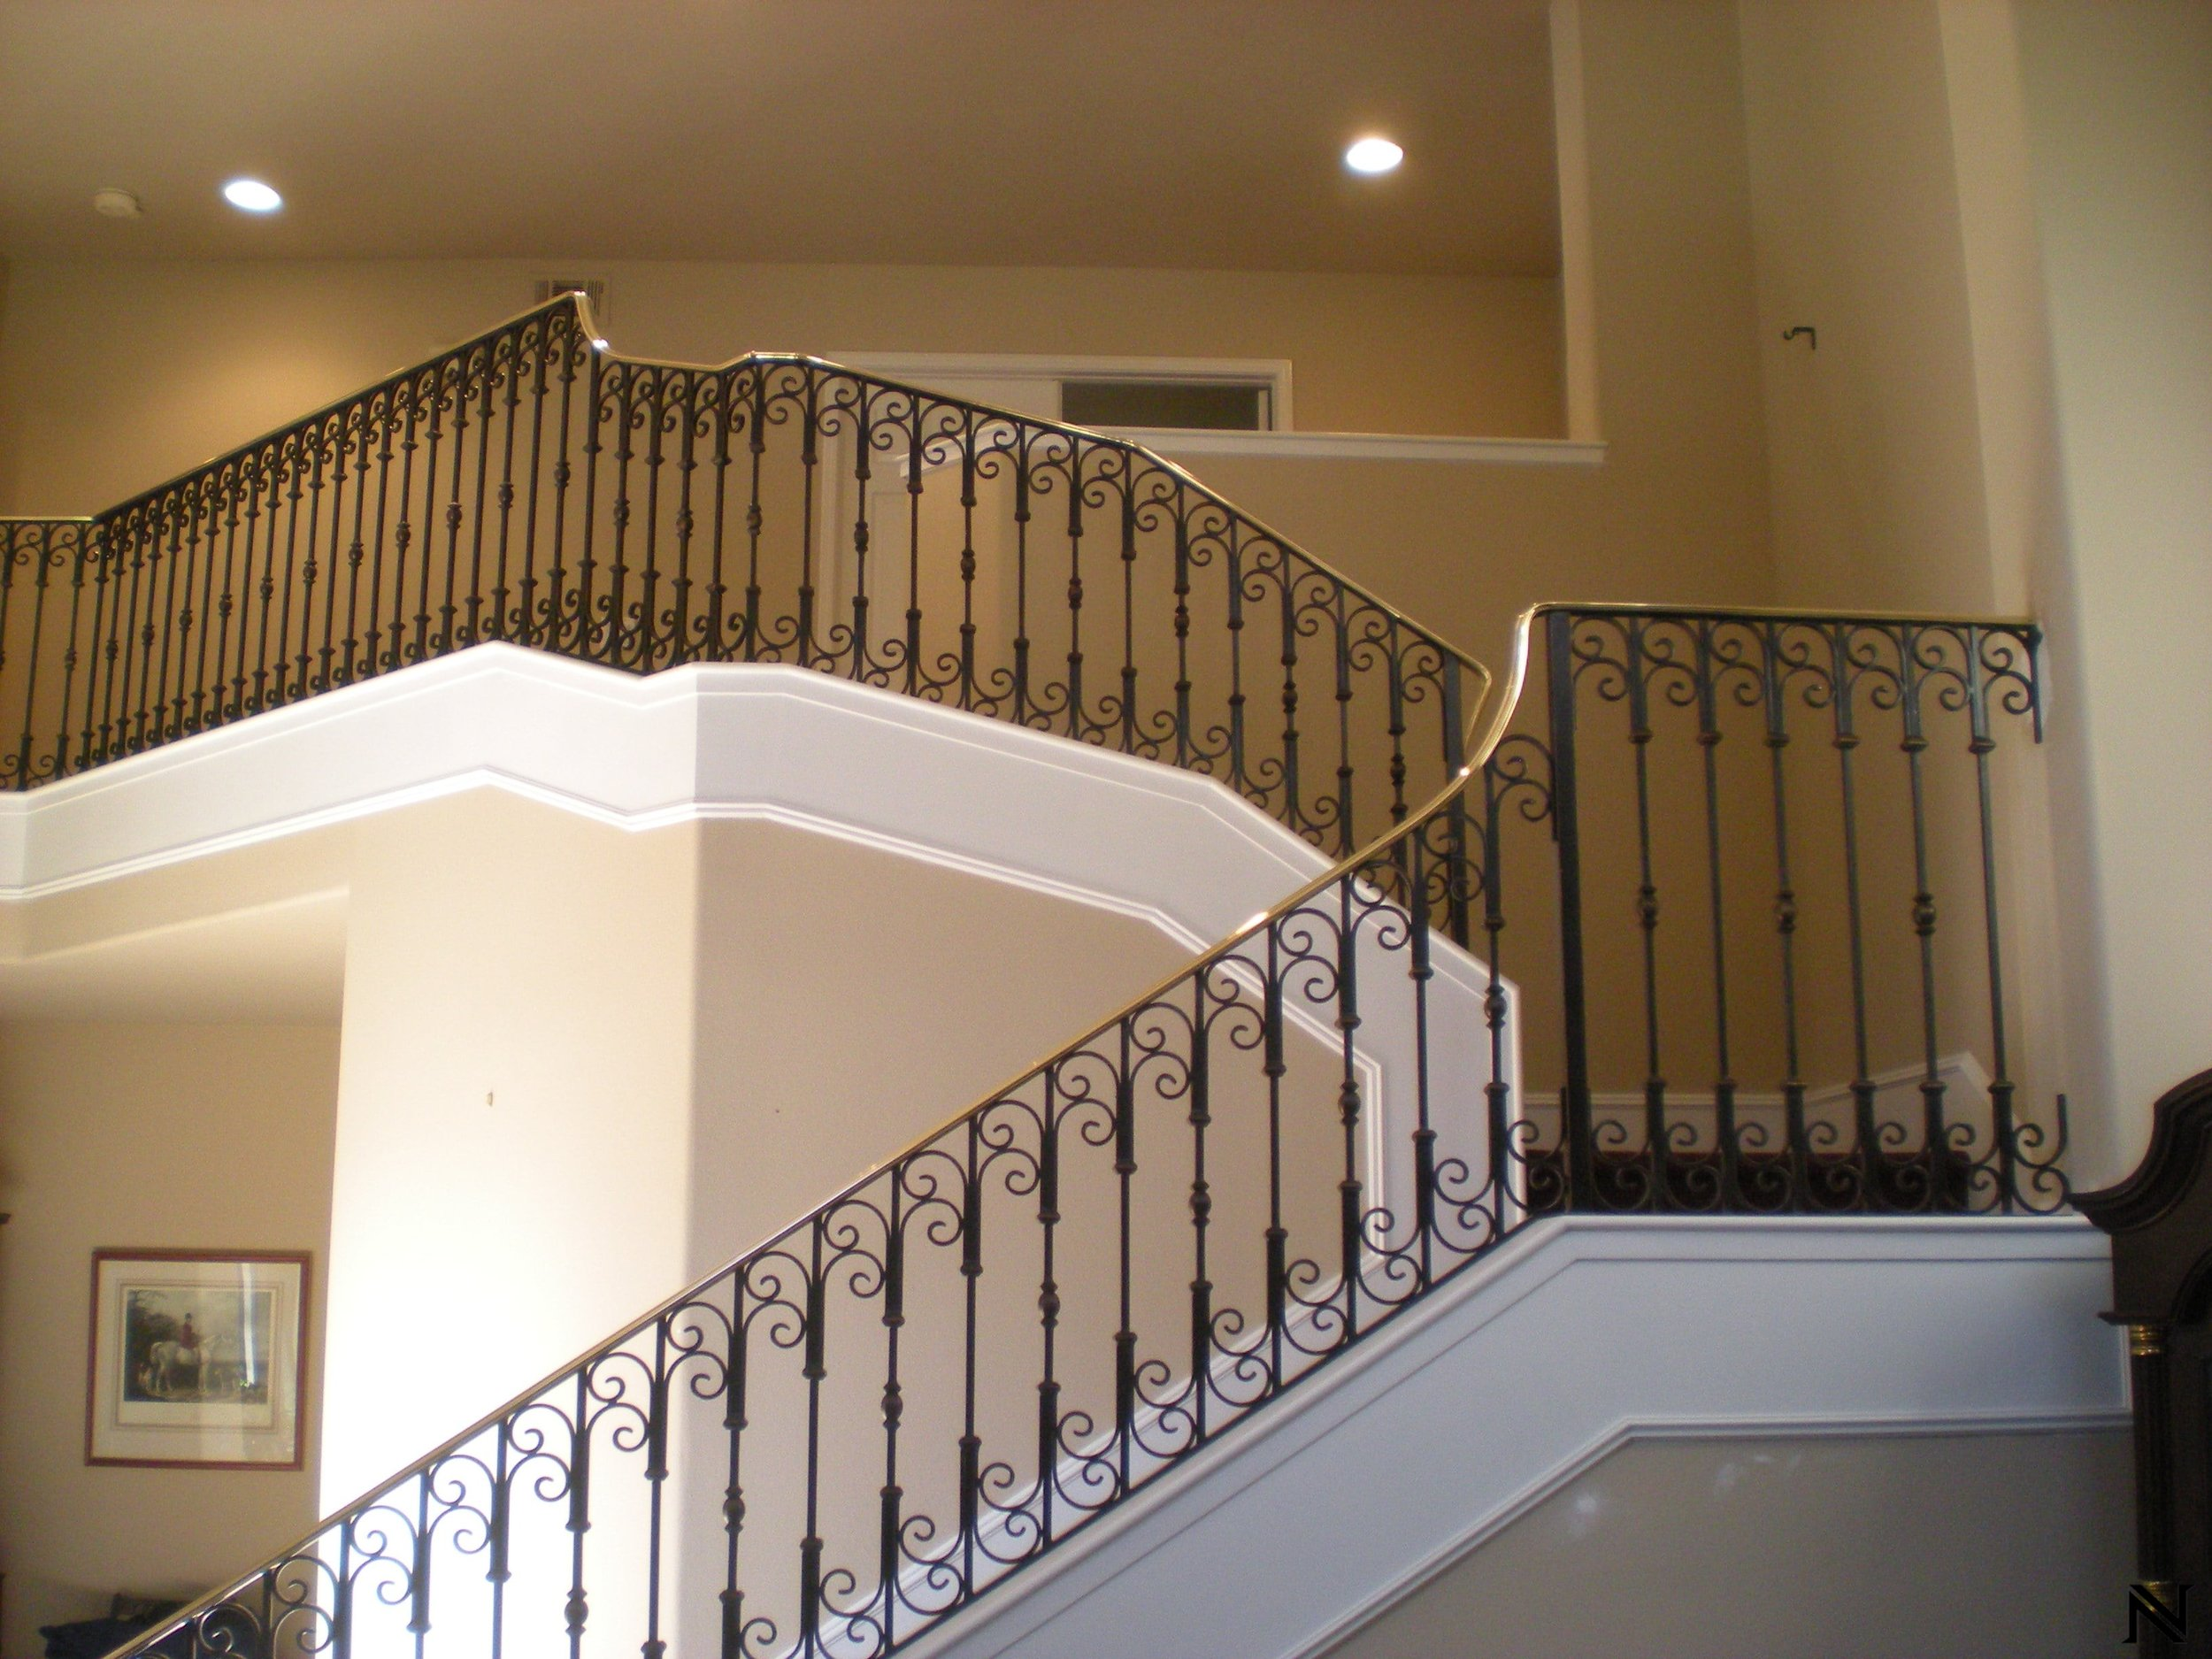 Vertical Banisters with Spiral Accents and Golden HandrailStaircase Railings Design Ideas Naddour's Custom Metalworks